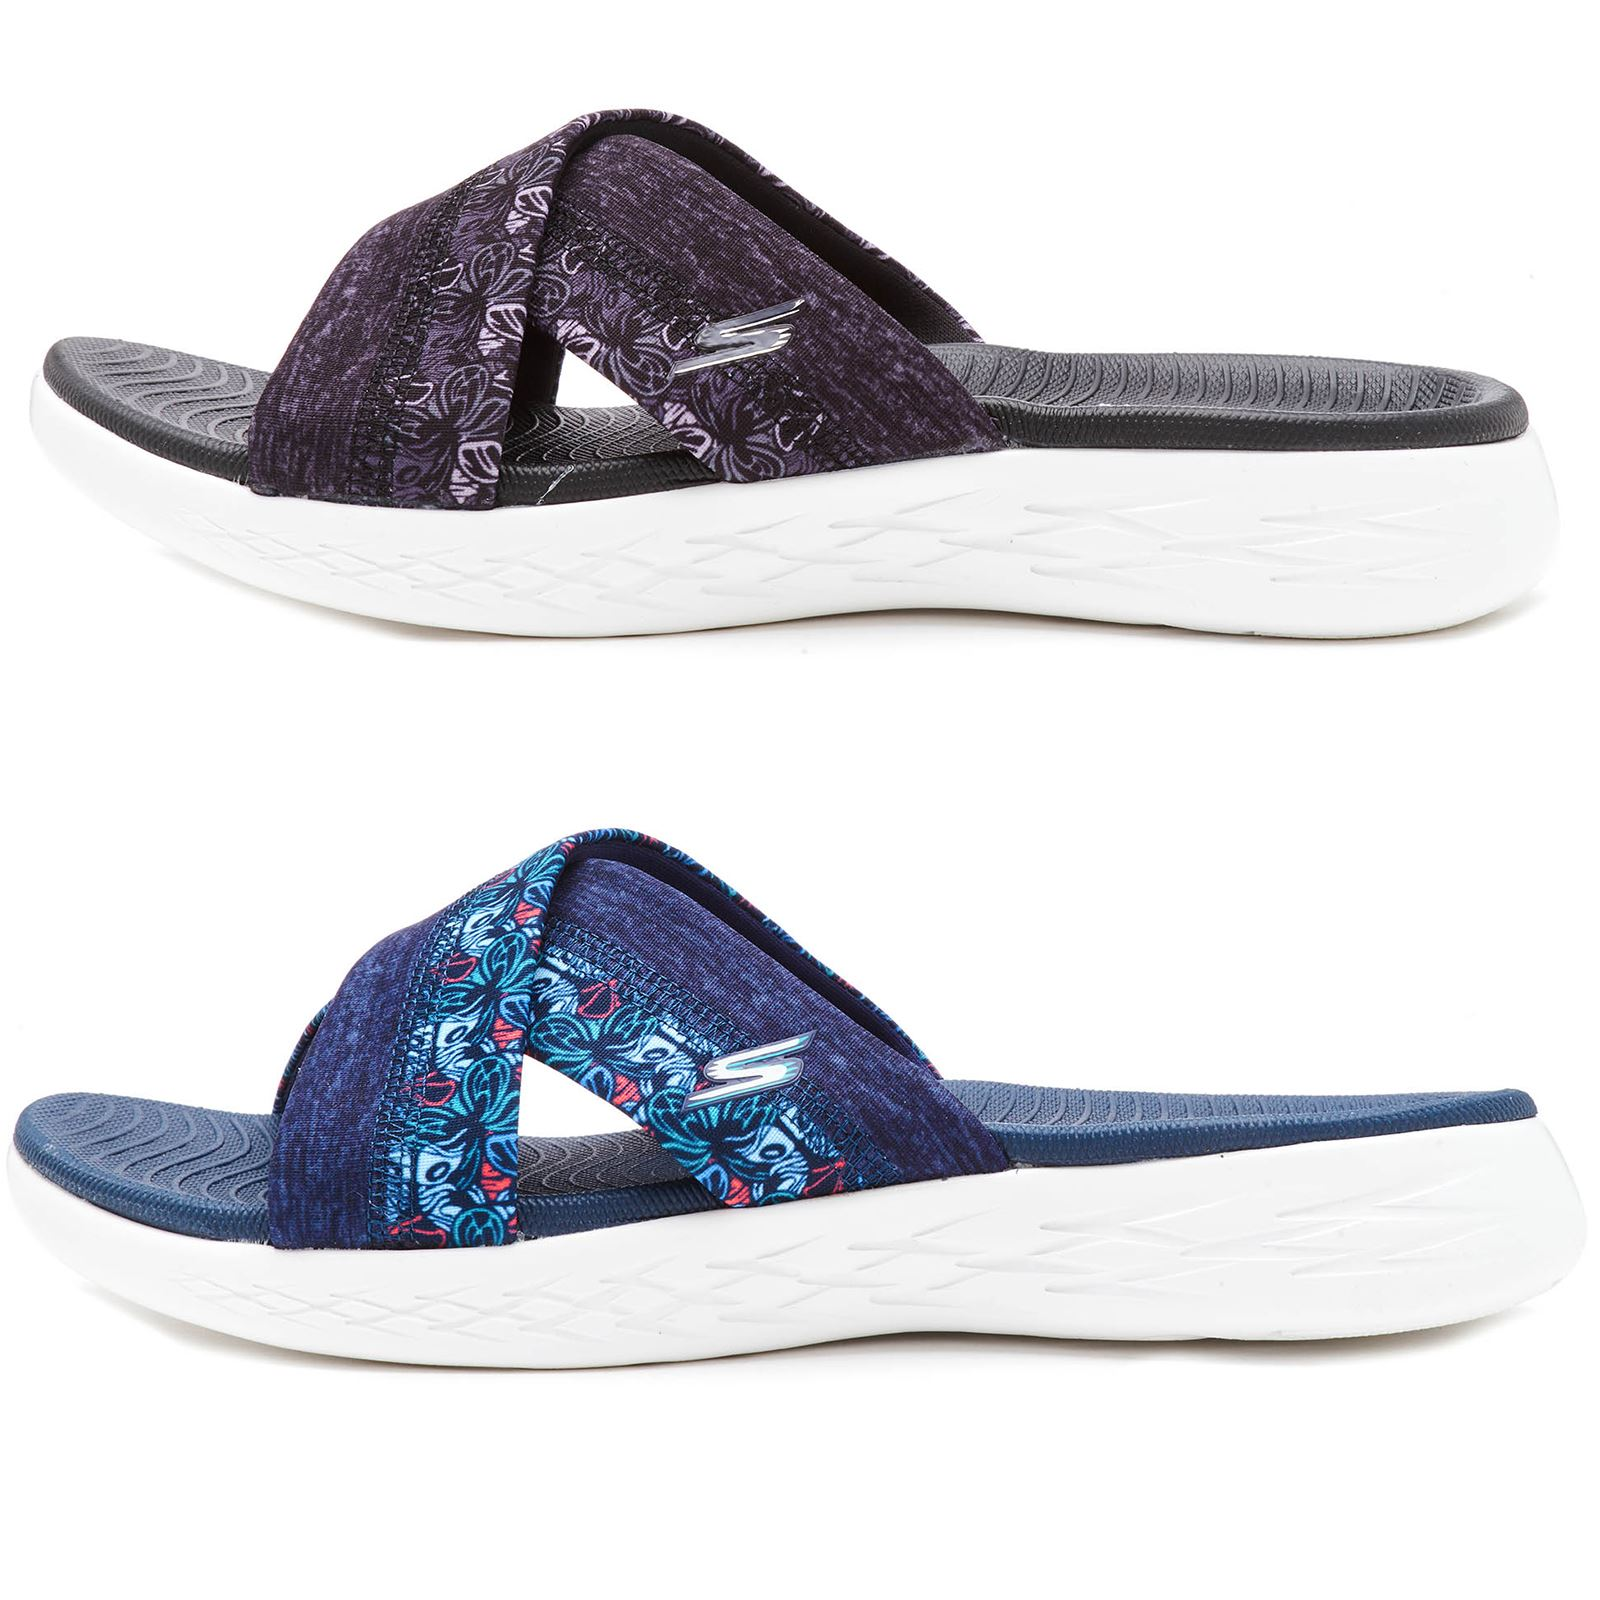 Skechers 15306 Navy Womens Cross Over Beach Summer Sandals Floral Design